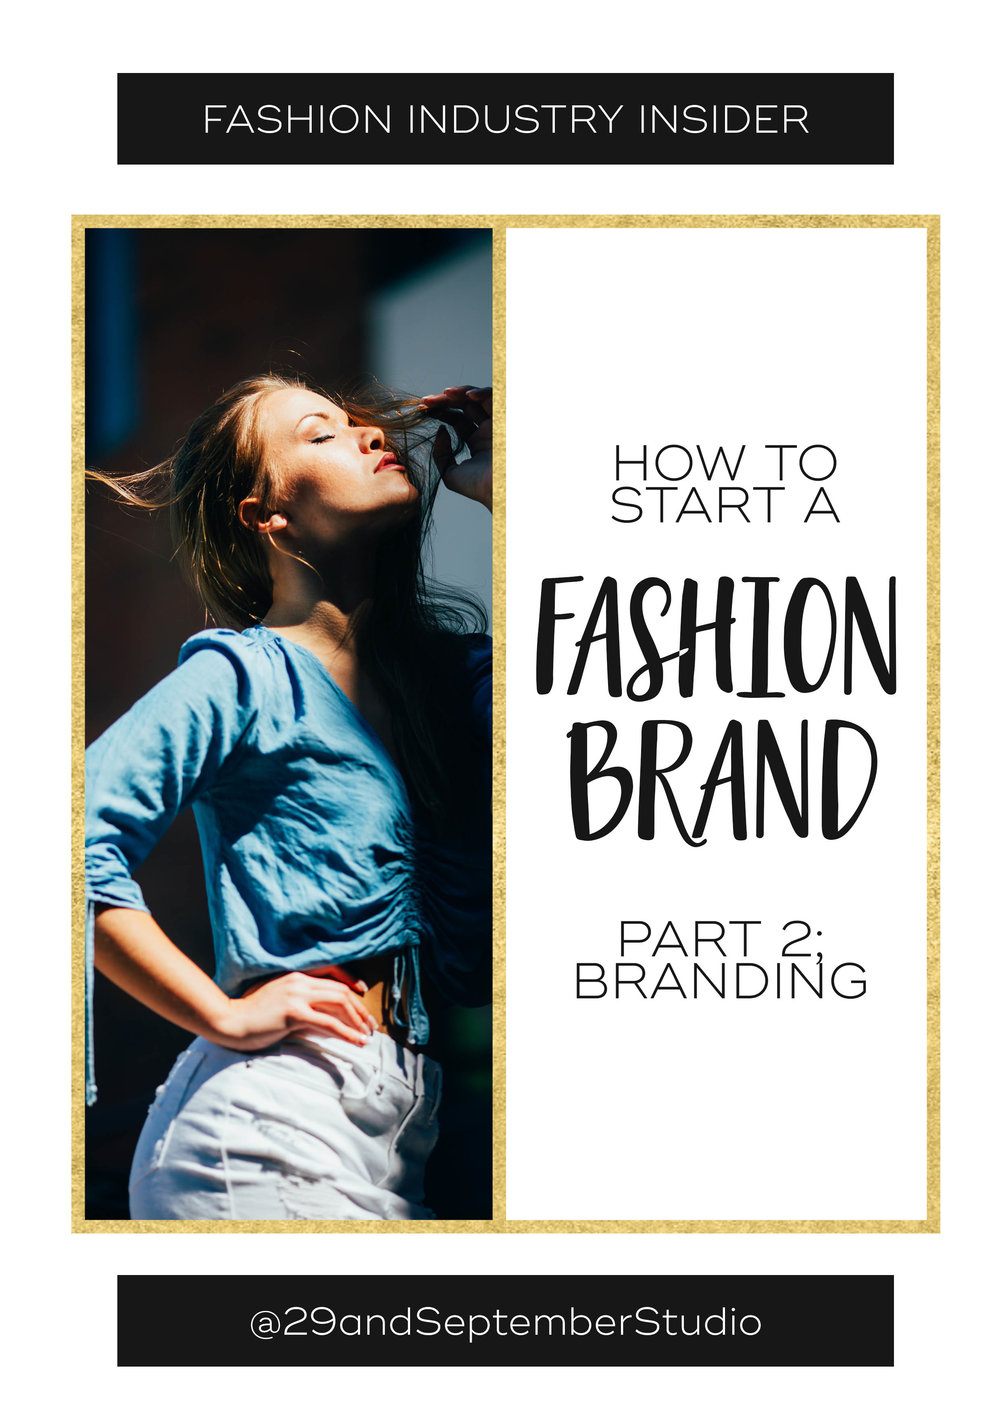 How to Start a Fashion Brand; Part 2, brand identity